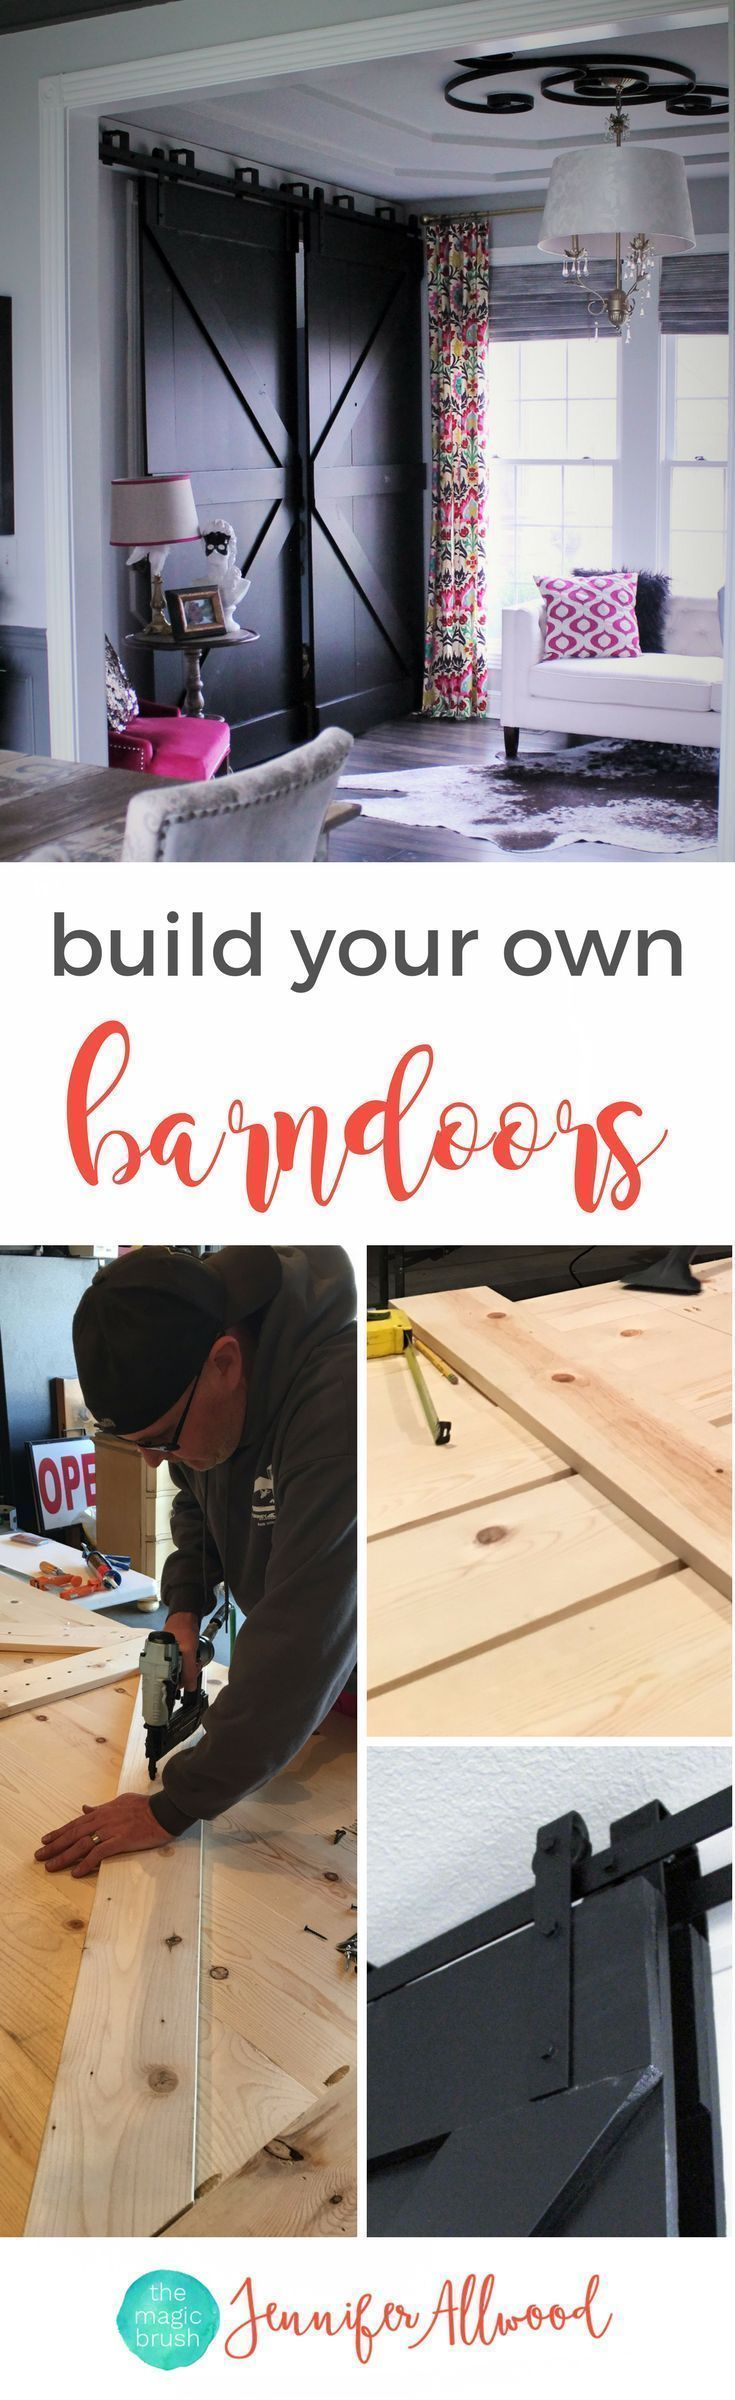 How to's : Free Tutorial: build your own black bypass barndoors using whitewood | DIY Farmhouse barndoors | Home Office Idea by themagicbrushinc.com | Black Barndoors and painted barndoors #barndoors #doors #diy #repurpose #homedecor #decor #diyhomedecor #farmhouse